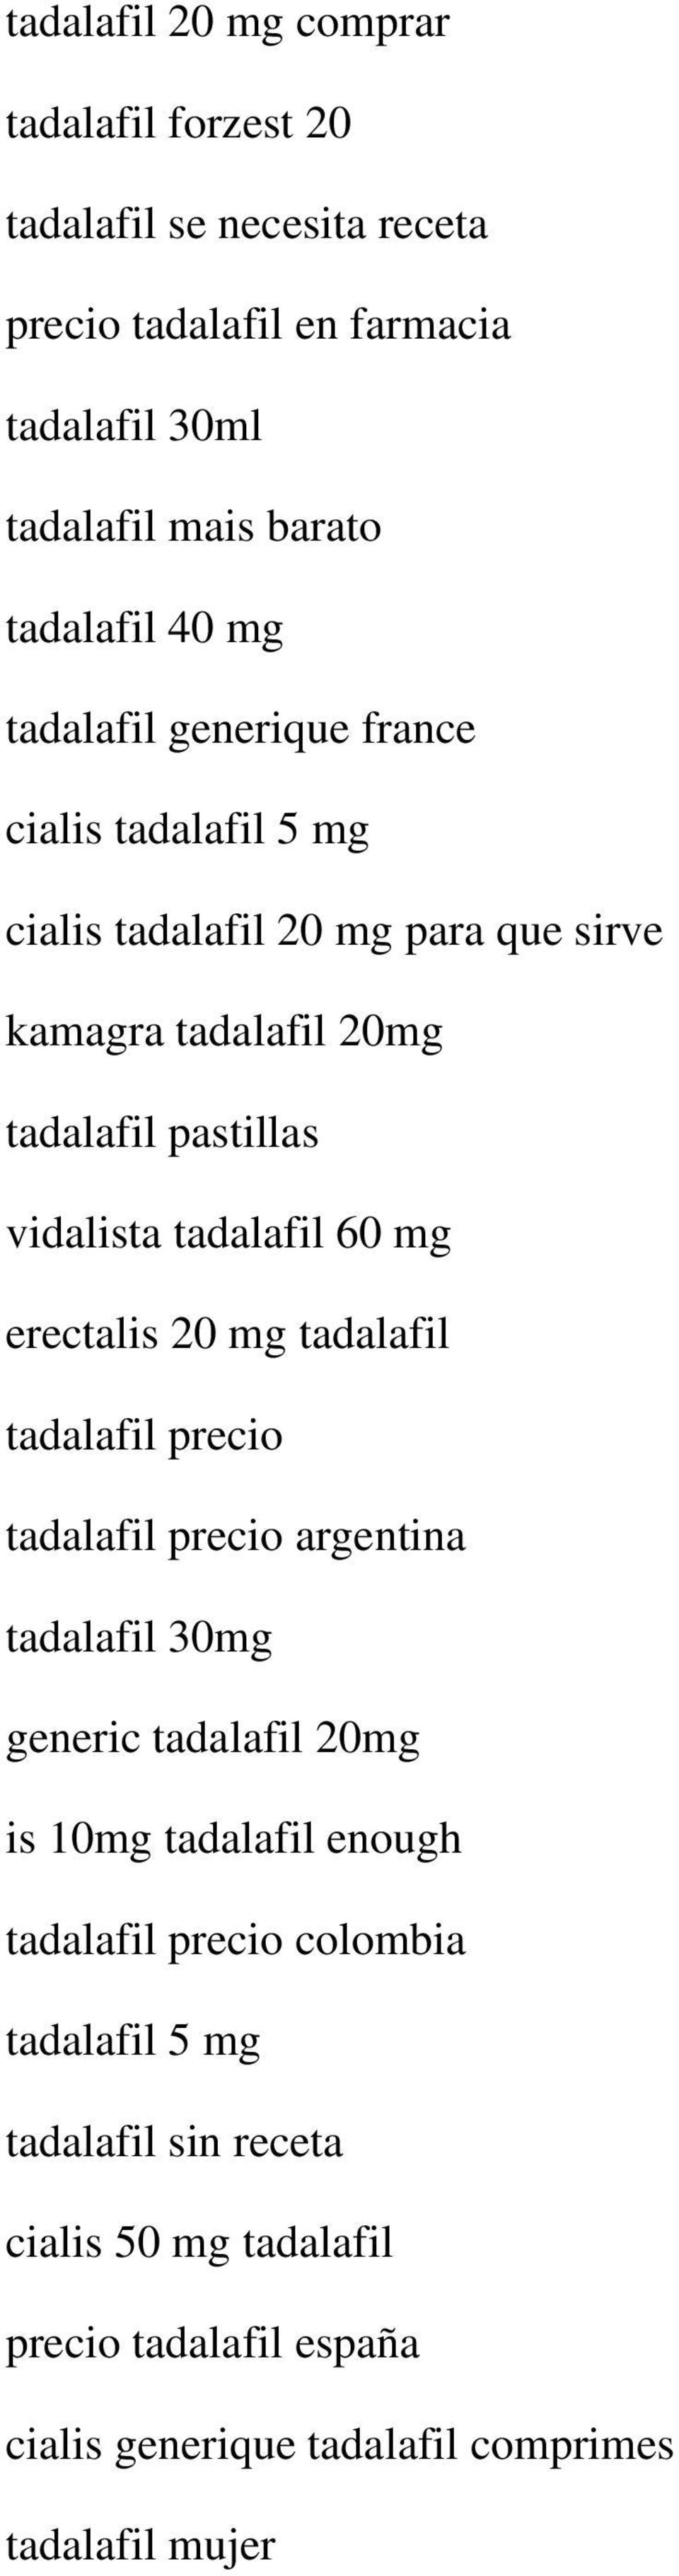 Is cialis 5mg enough